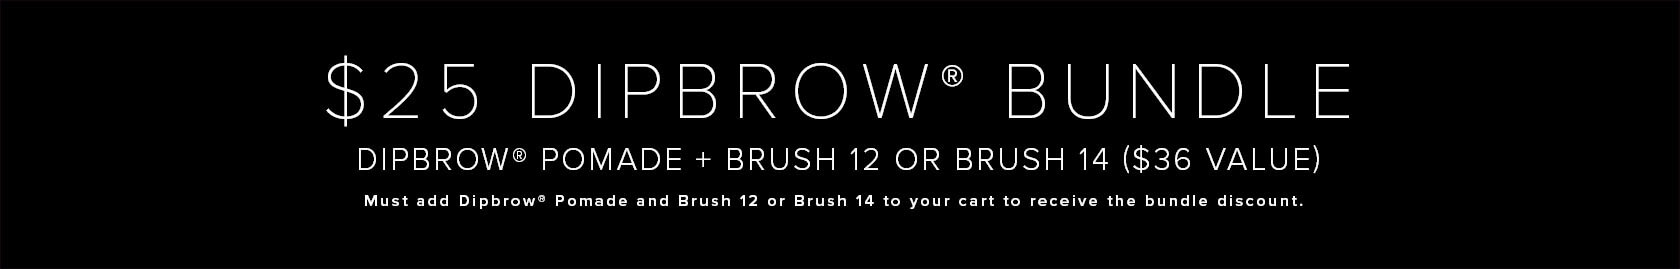 $25 for Dipbrow and Brush of Your Choice